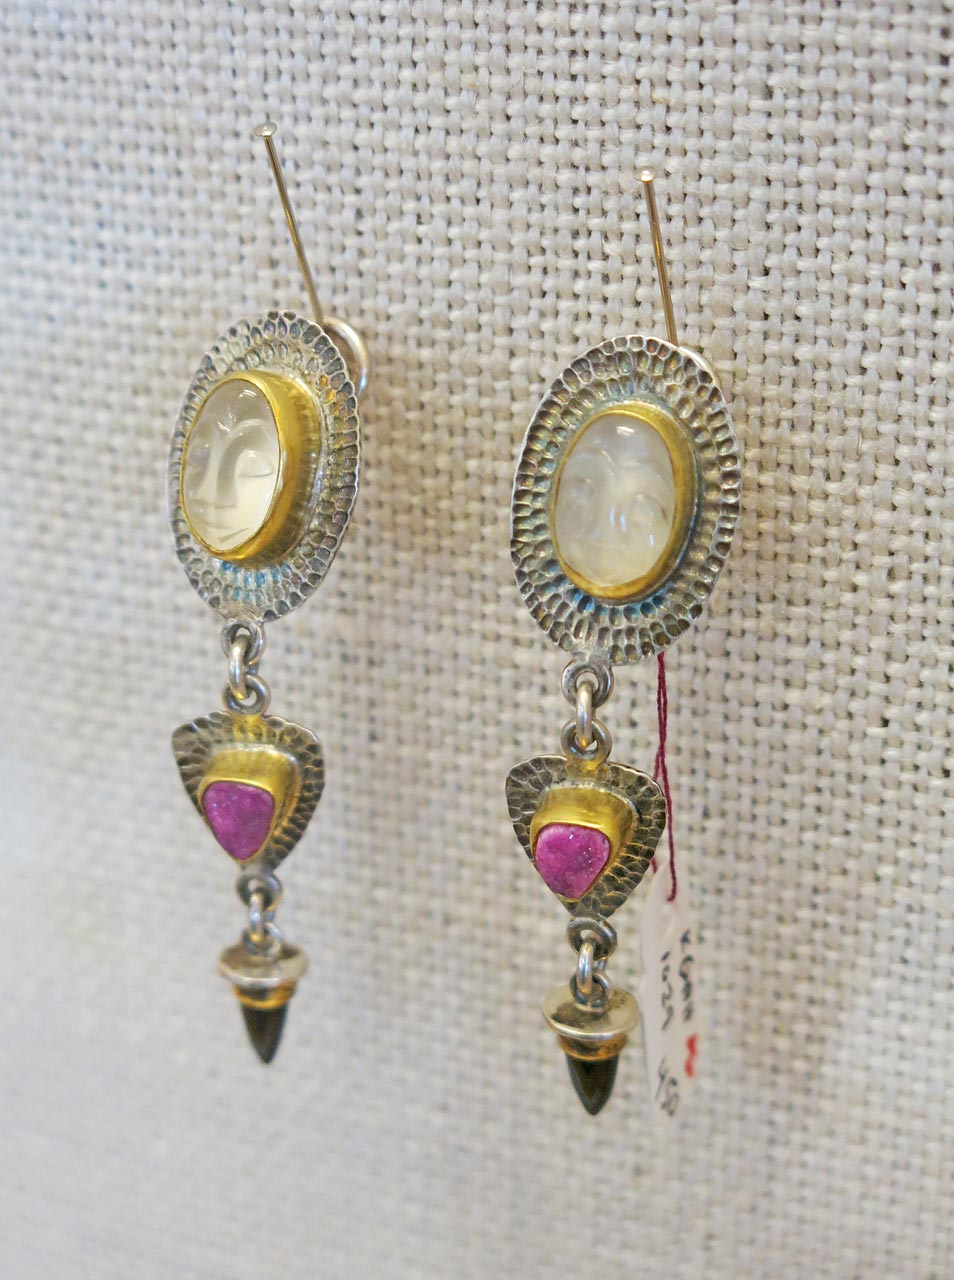 Earrings by Kathlean Gahagan.